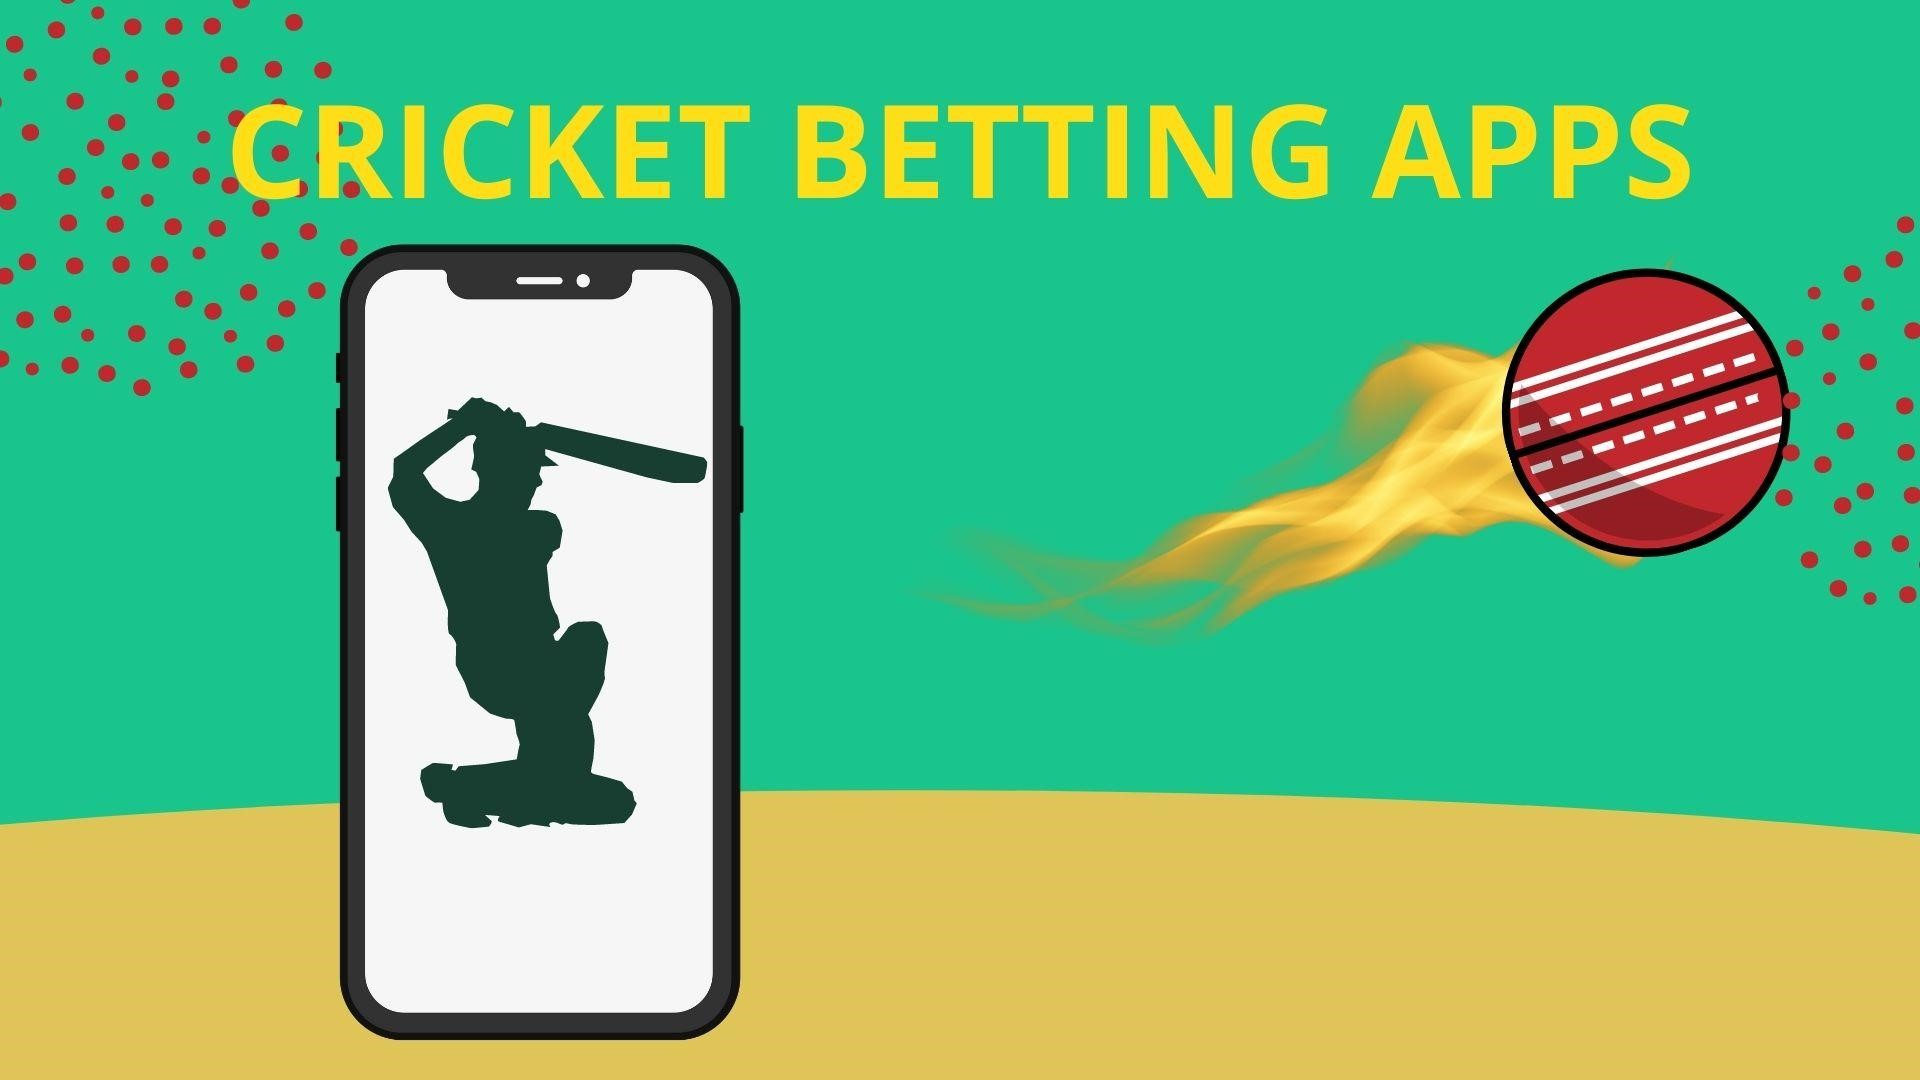 Cricket betting sites - How to choose the best bookmaker in India? 4